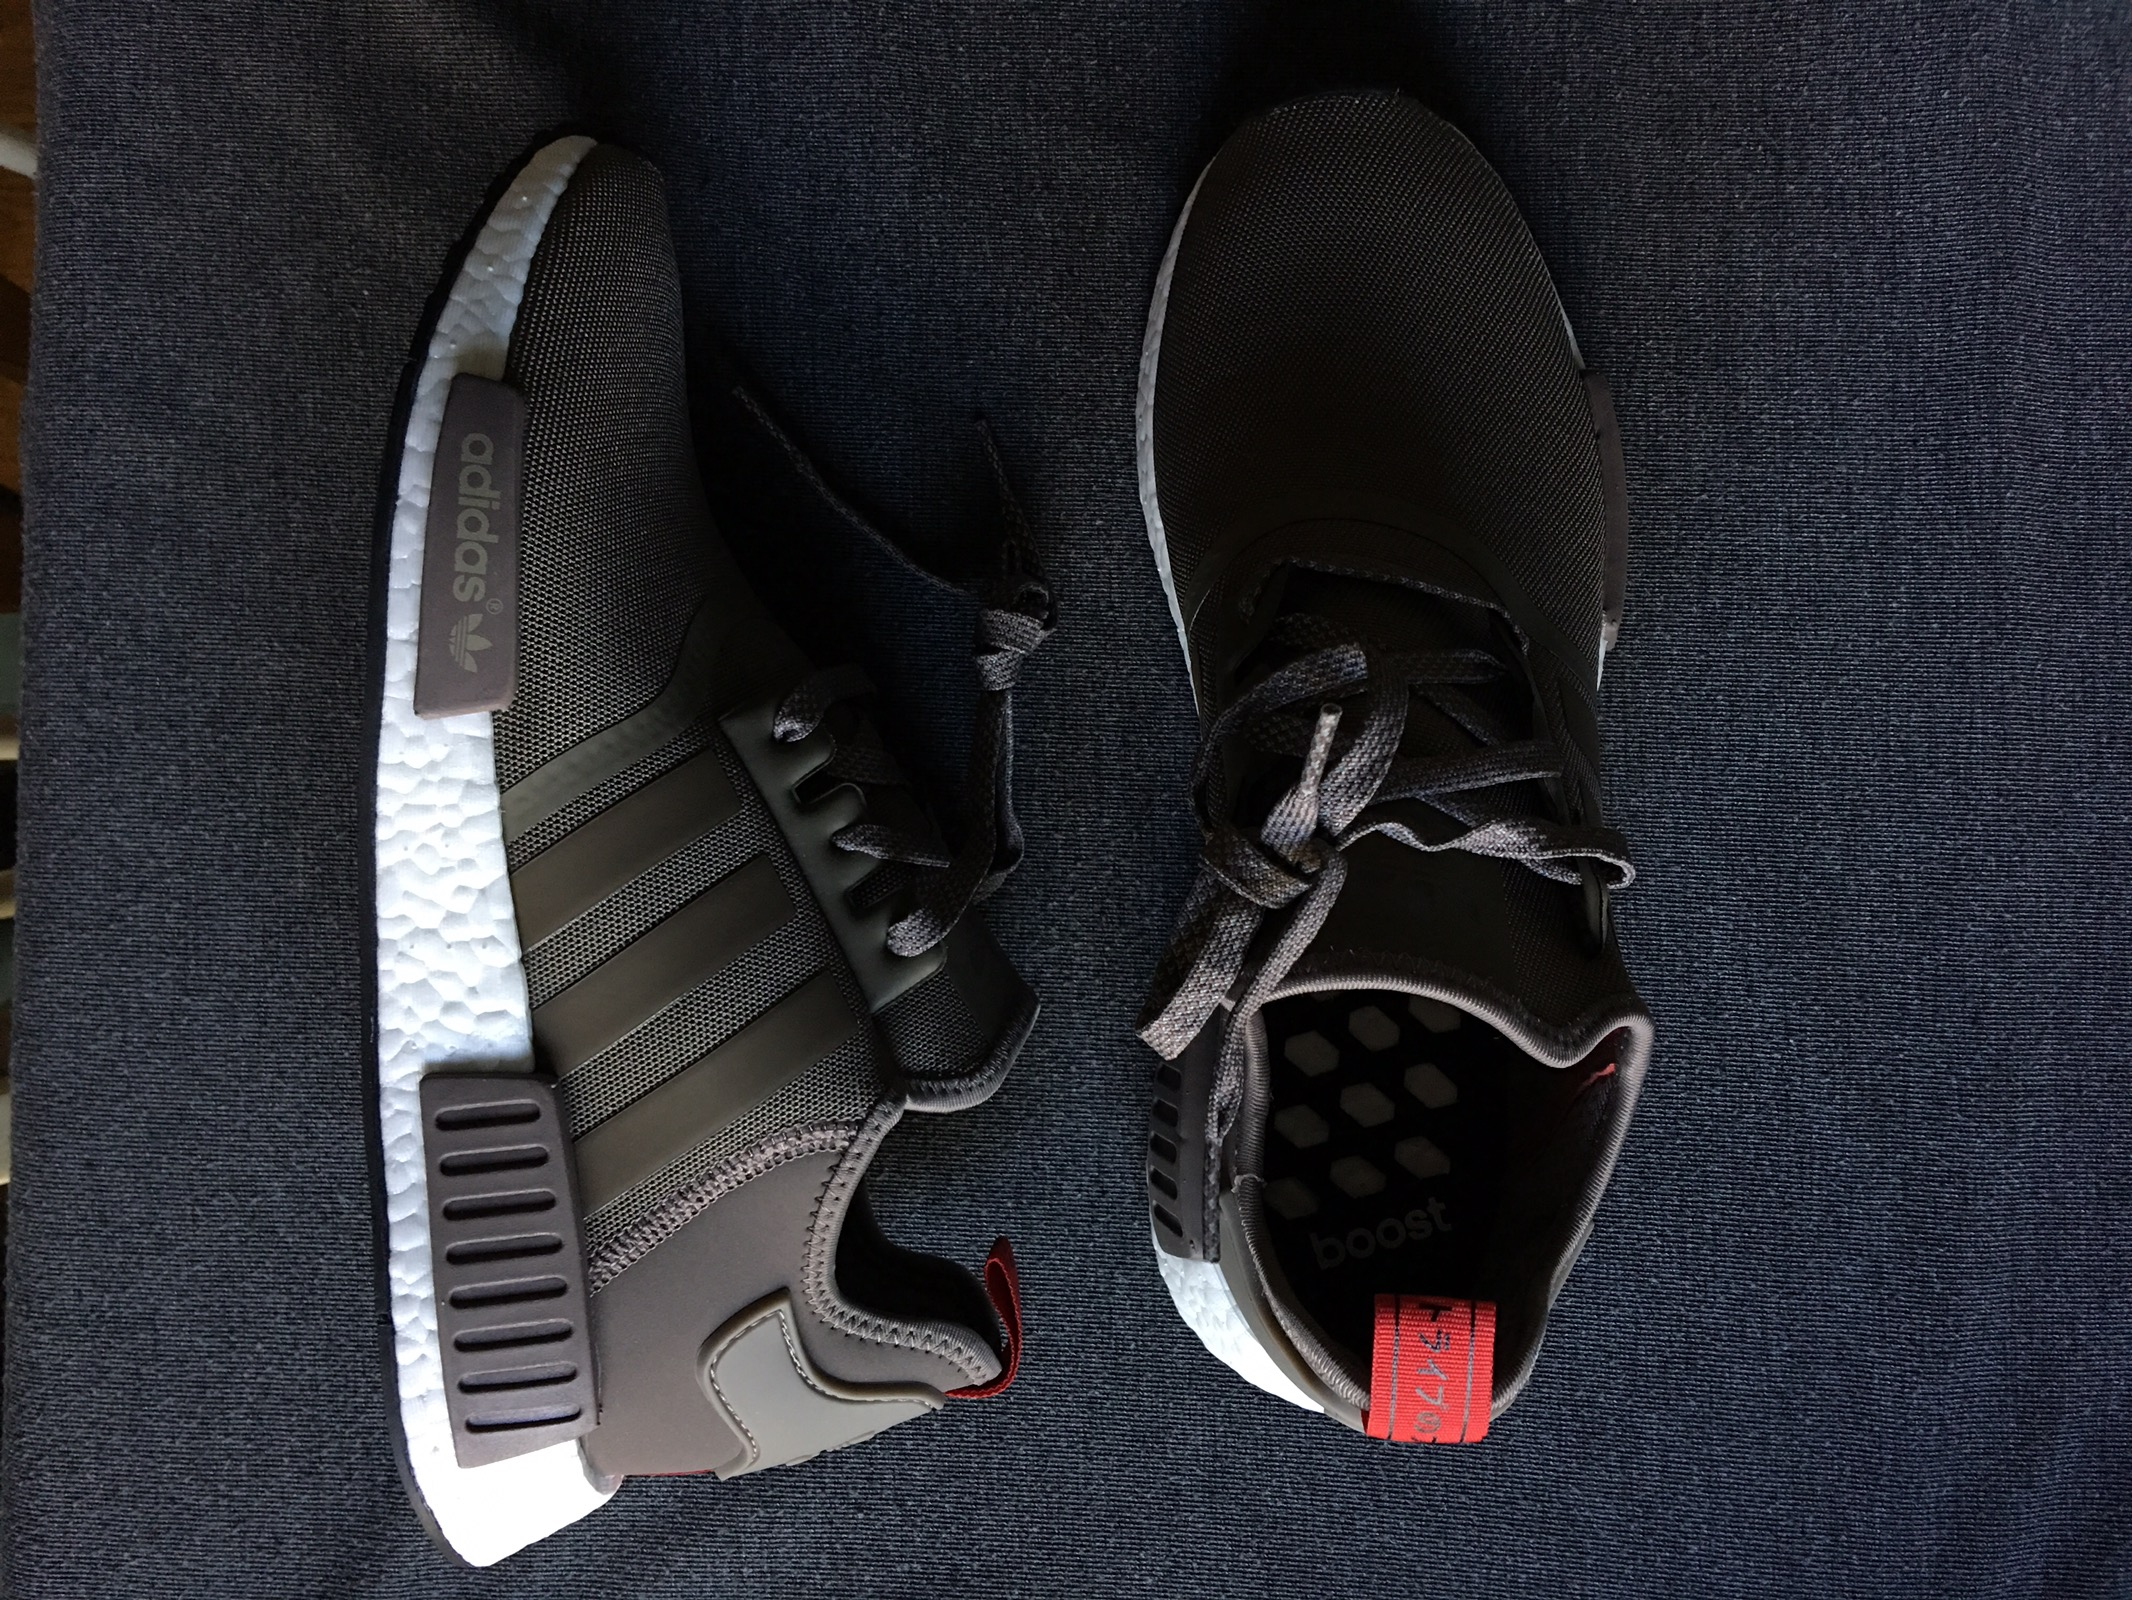 73b43146b Adidas NMD R1 - BEAMS 40th Anniversary Size 11 - Low-Top Sneakers for Sale  - Grailed